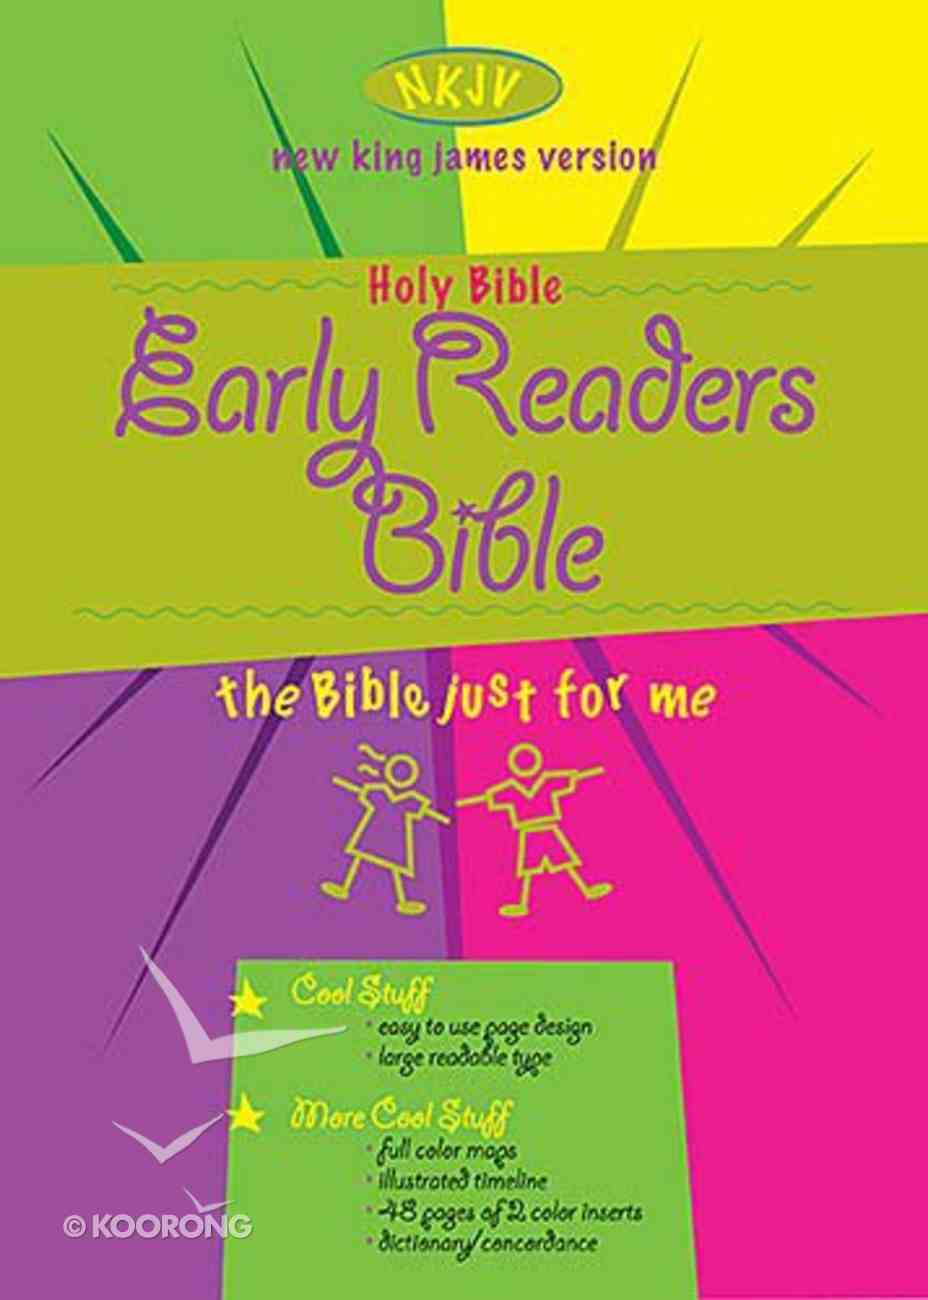 NKJV Early Readers Bible Blue Imitation Leather